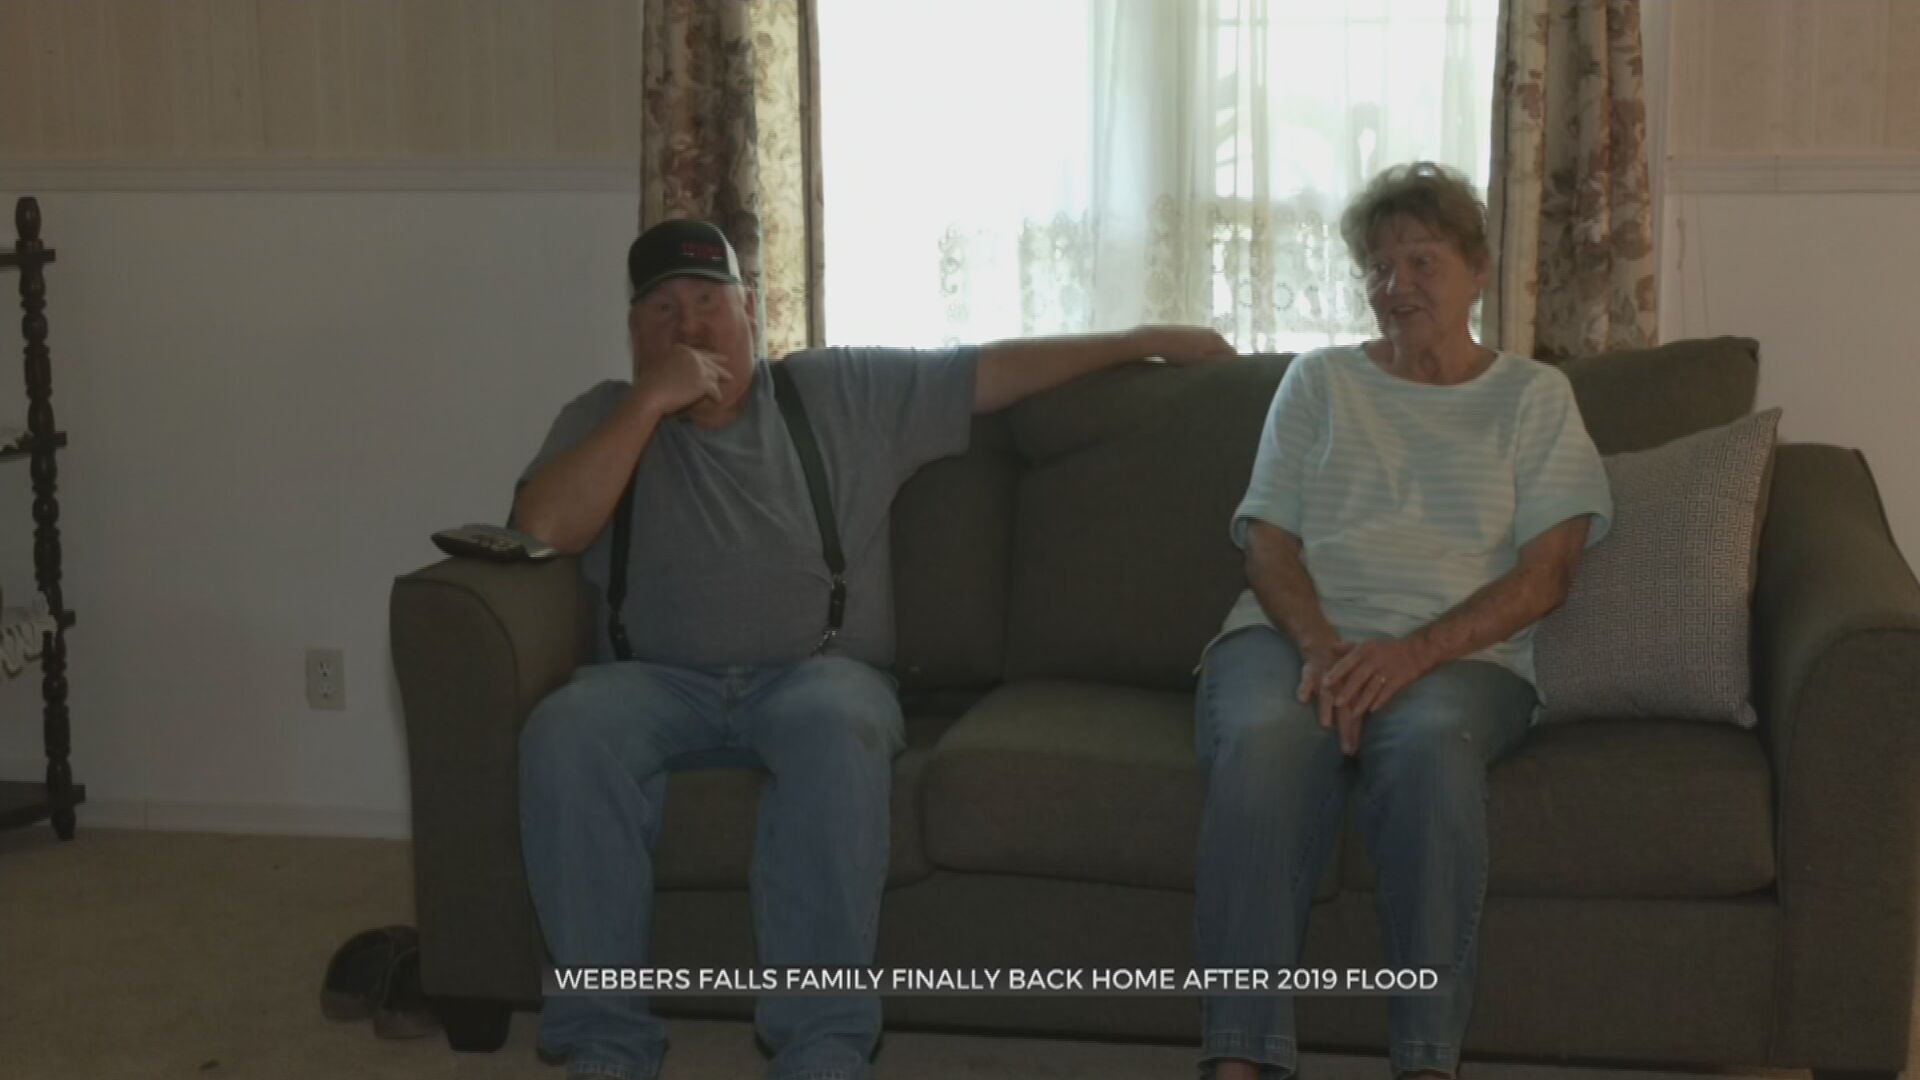 Webbers Falls Family Finally Back Home After 2019 Flood